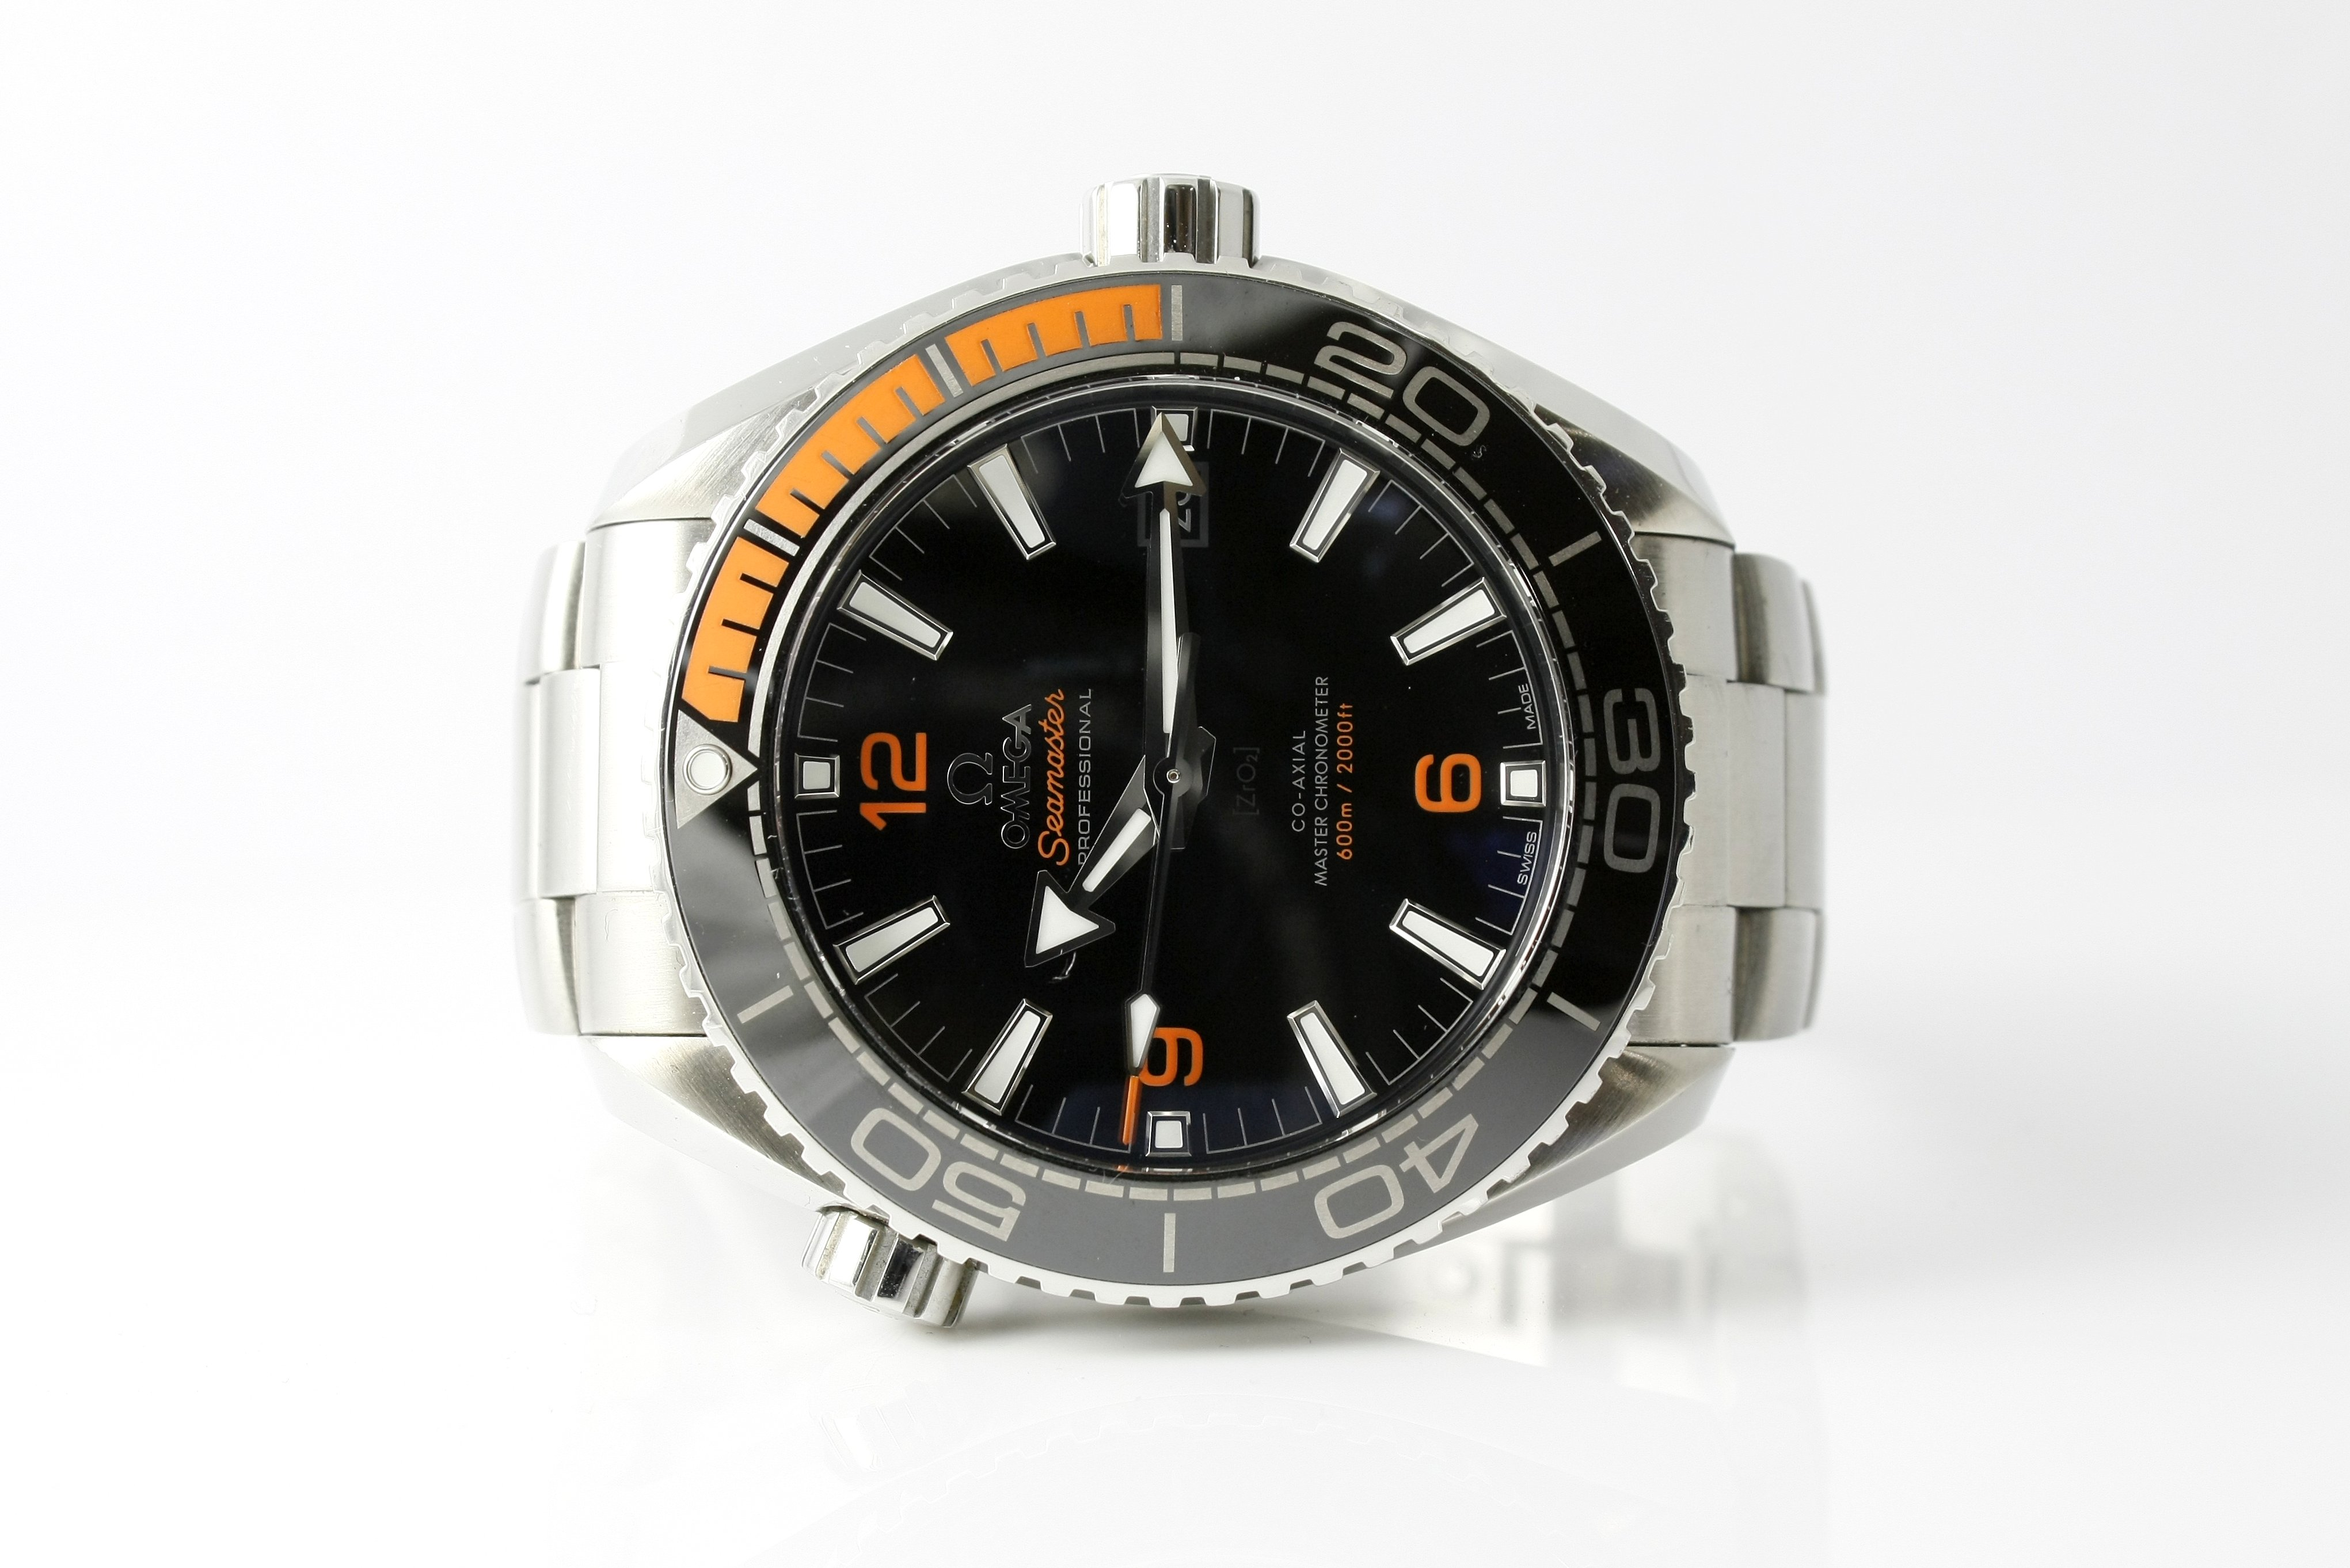 Omega Seamaster Planet Ocean Co-Axial - $4,600